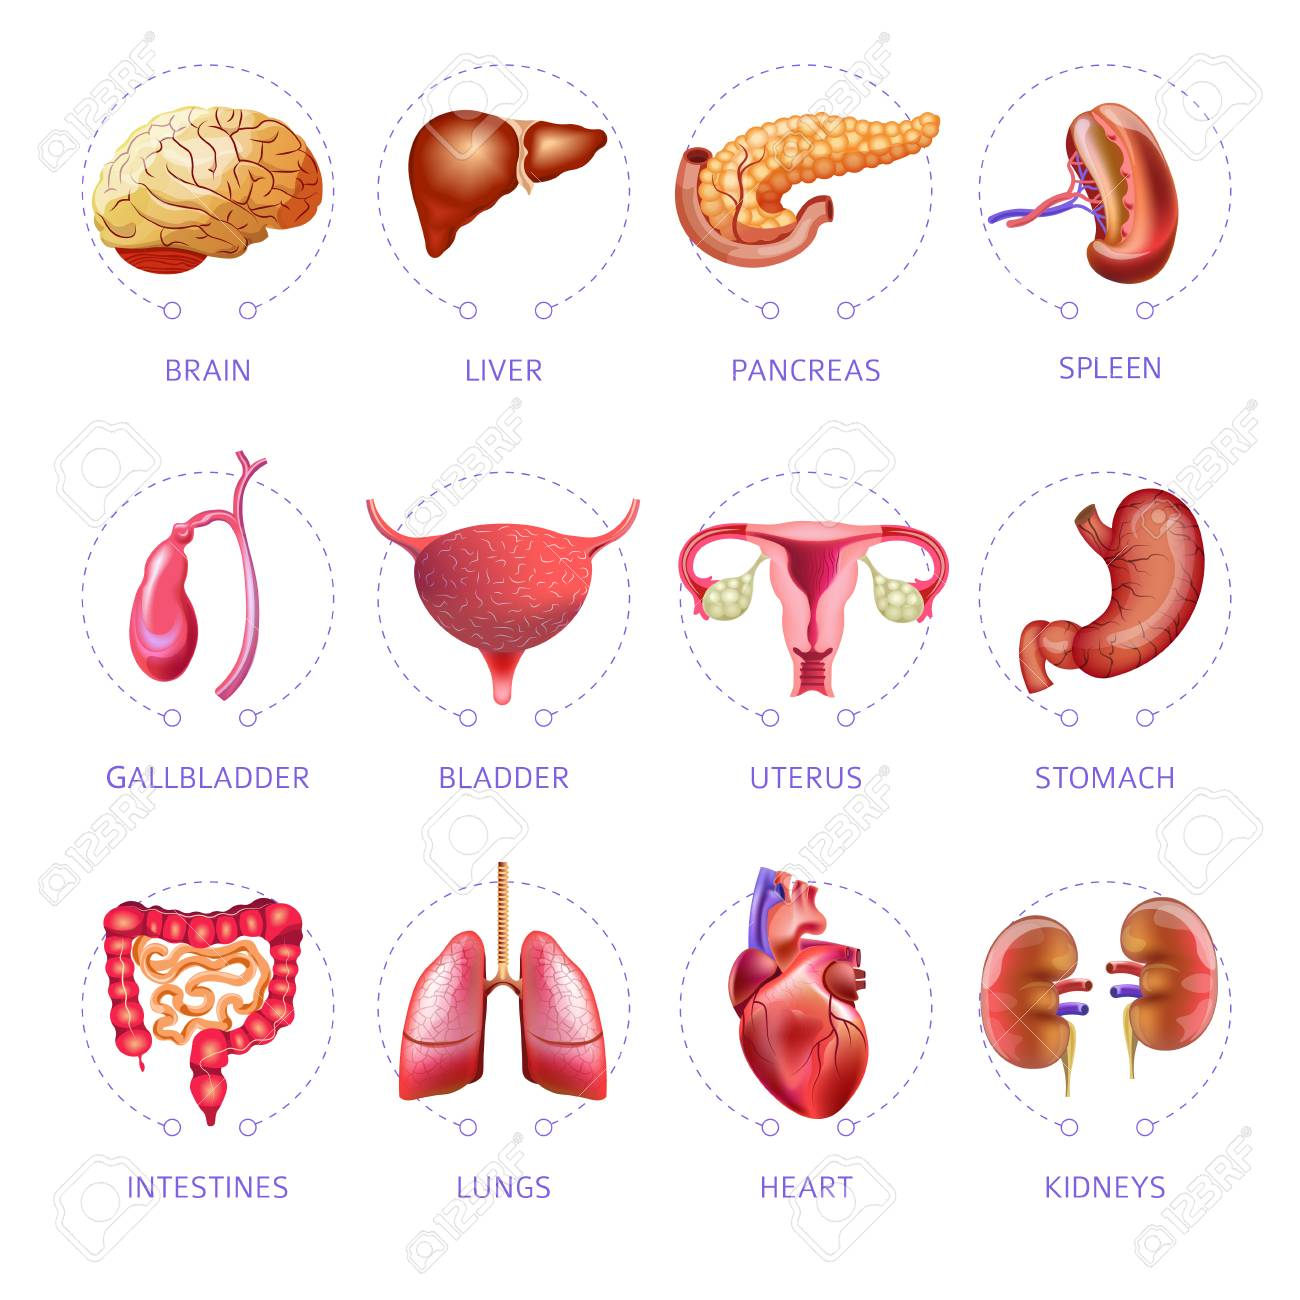 Human Body Internal Organs Icons Set Royalty Free Cliparts Vectors